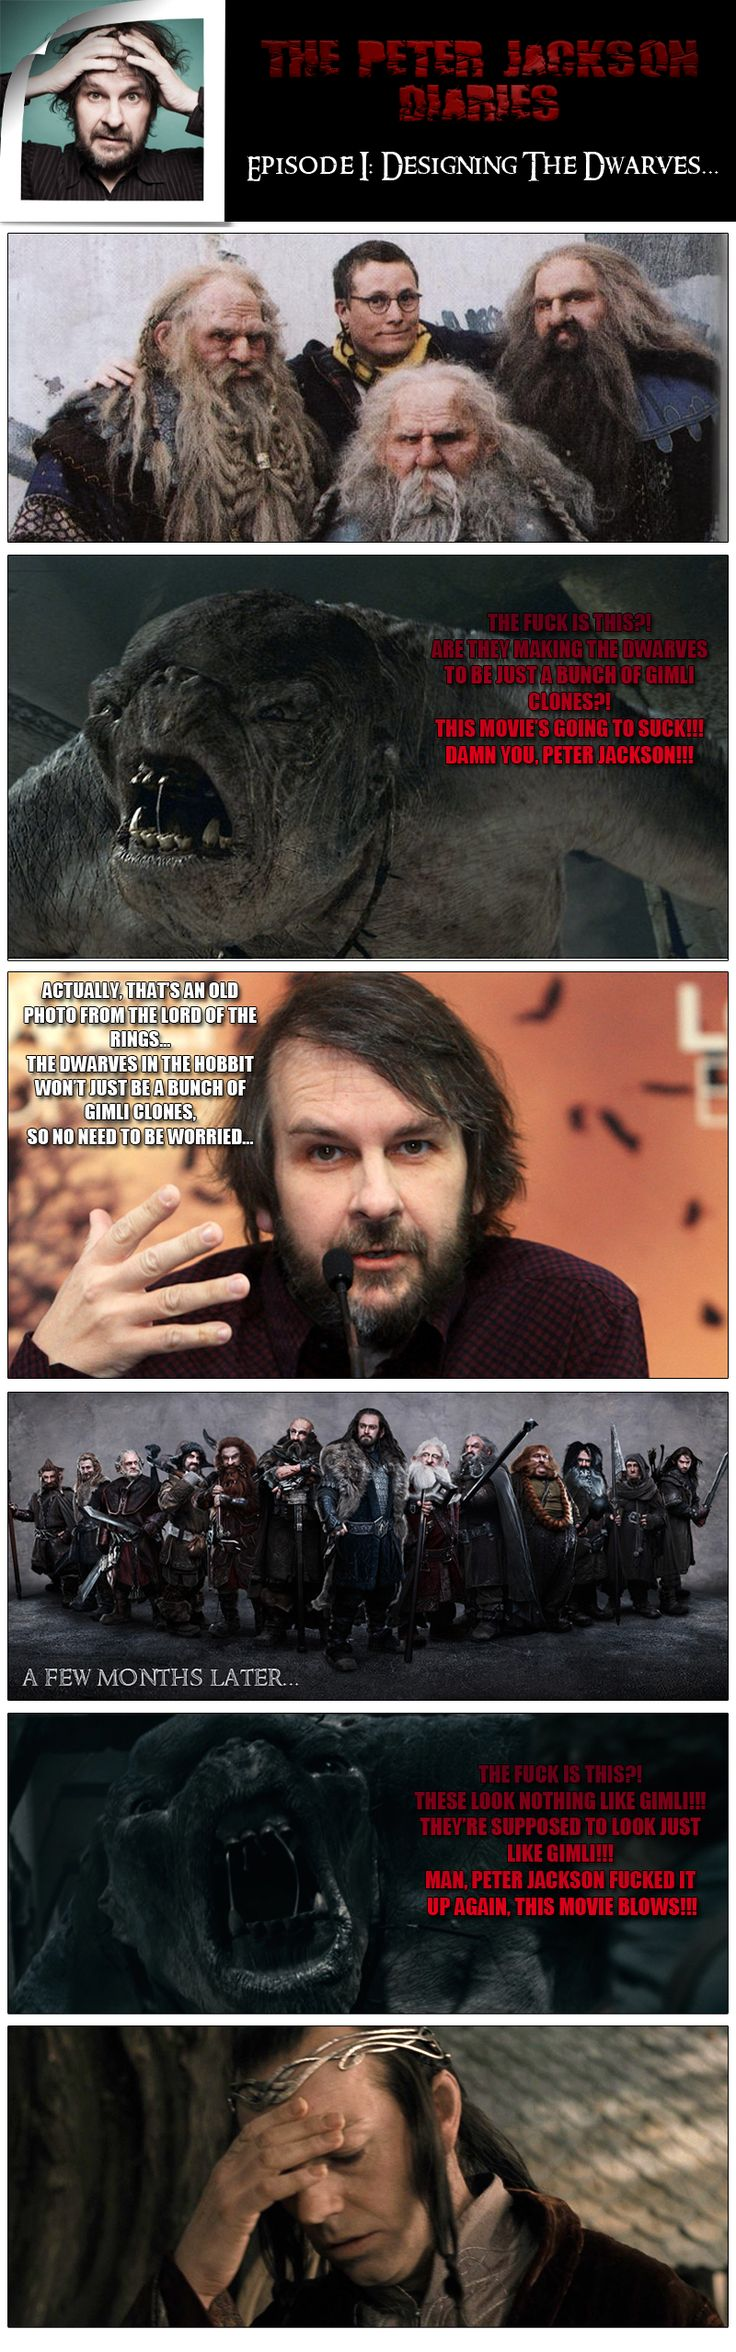 please excuse the language. I feel so bad for Peter Jackson. He gets way too much crap and criticism that he dosn't need. honestly, leave the man alone he knows what hes doing.